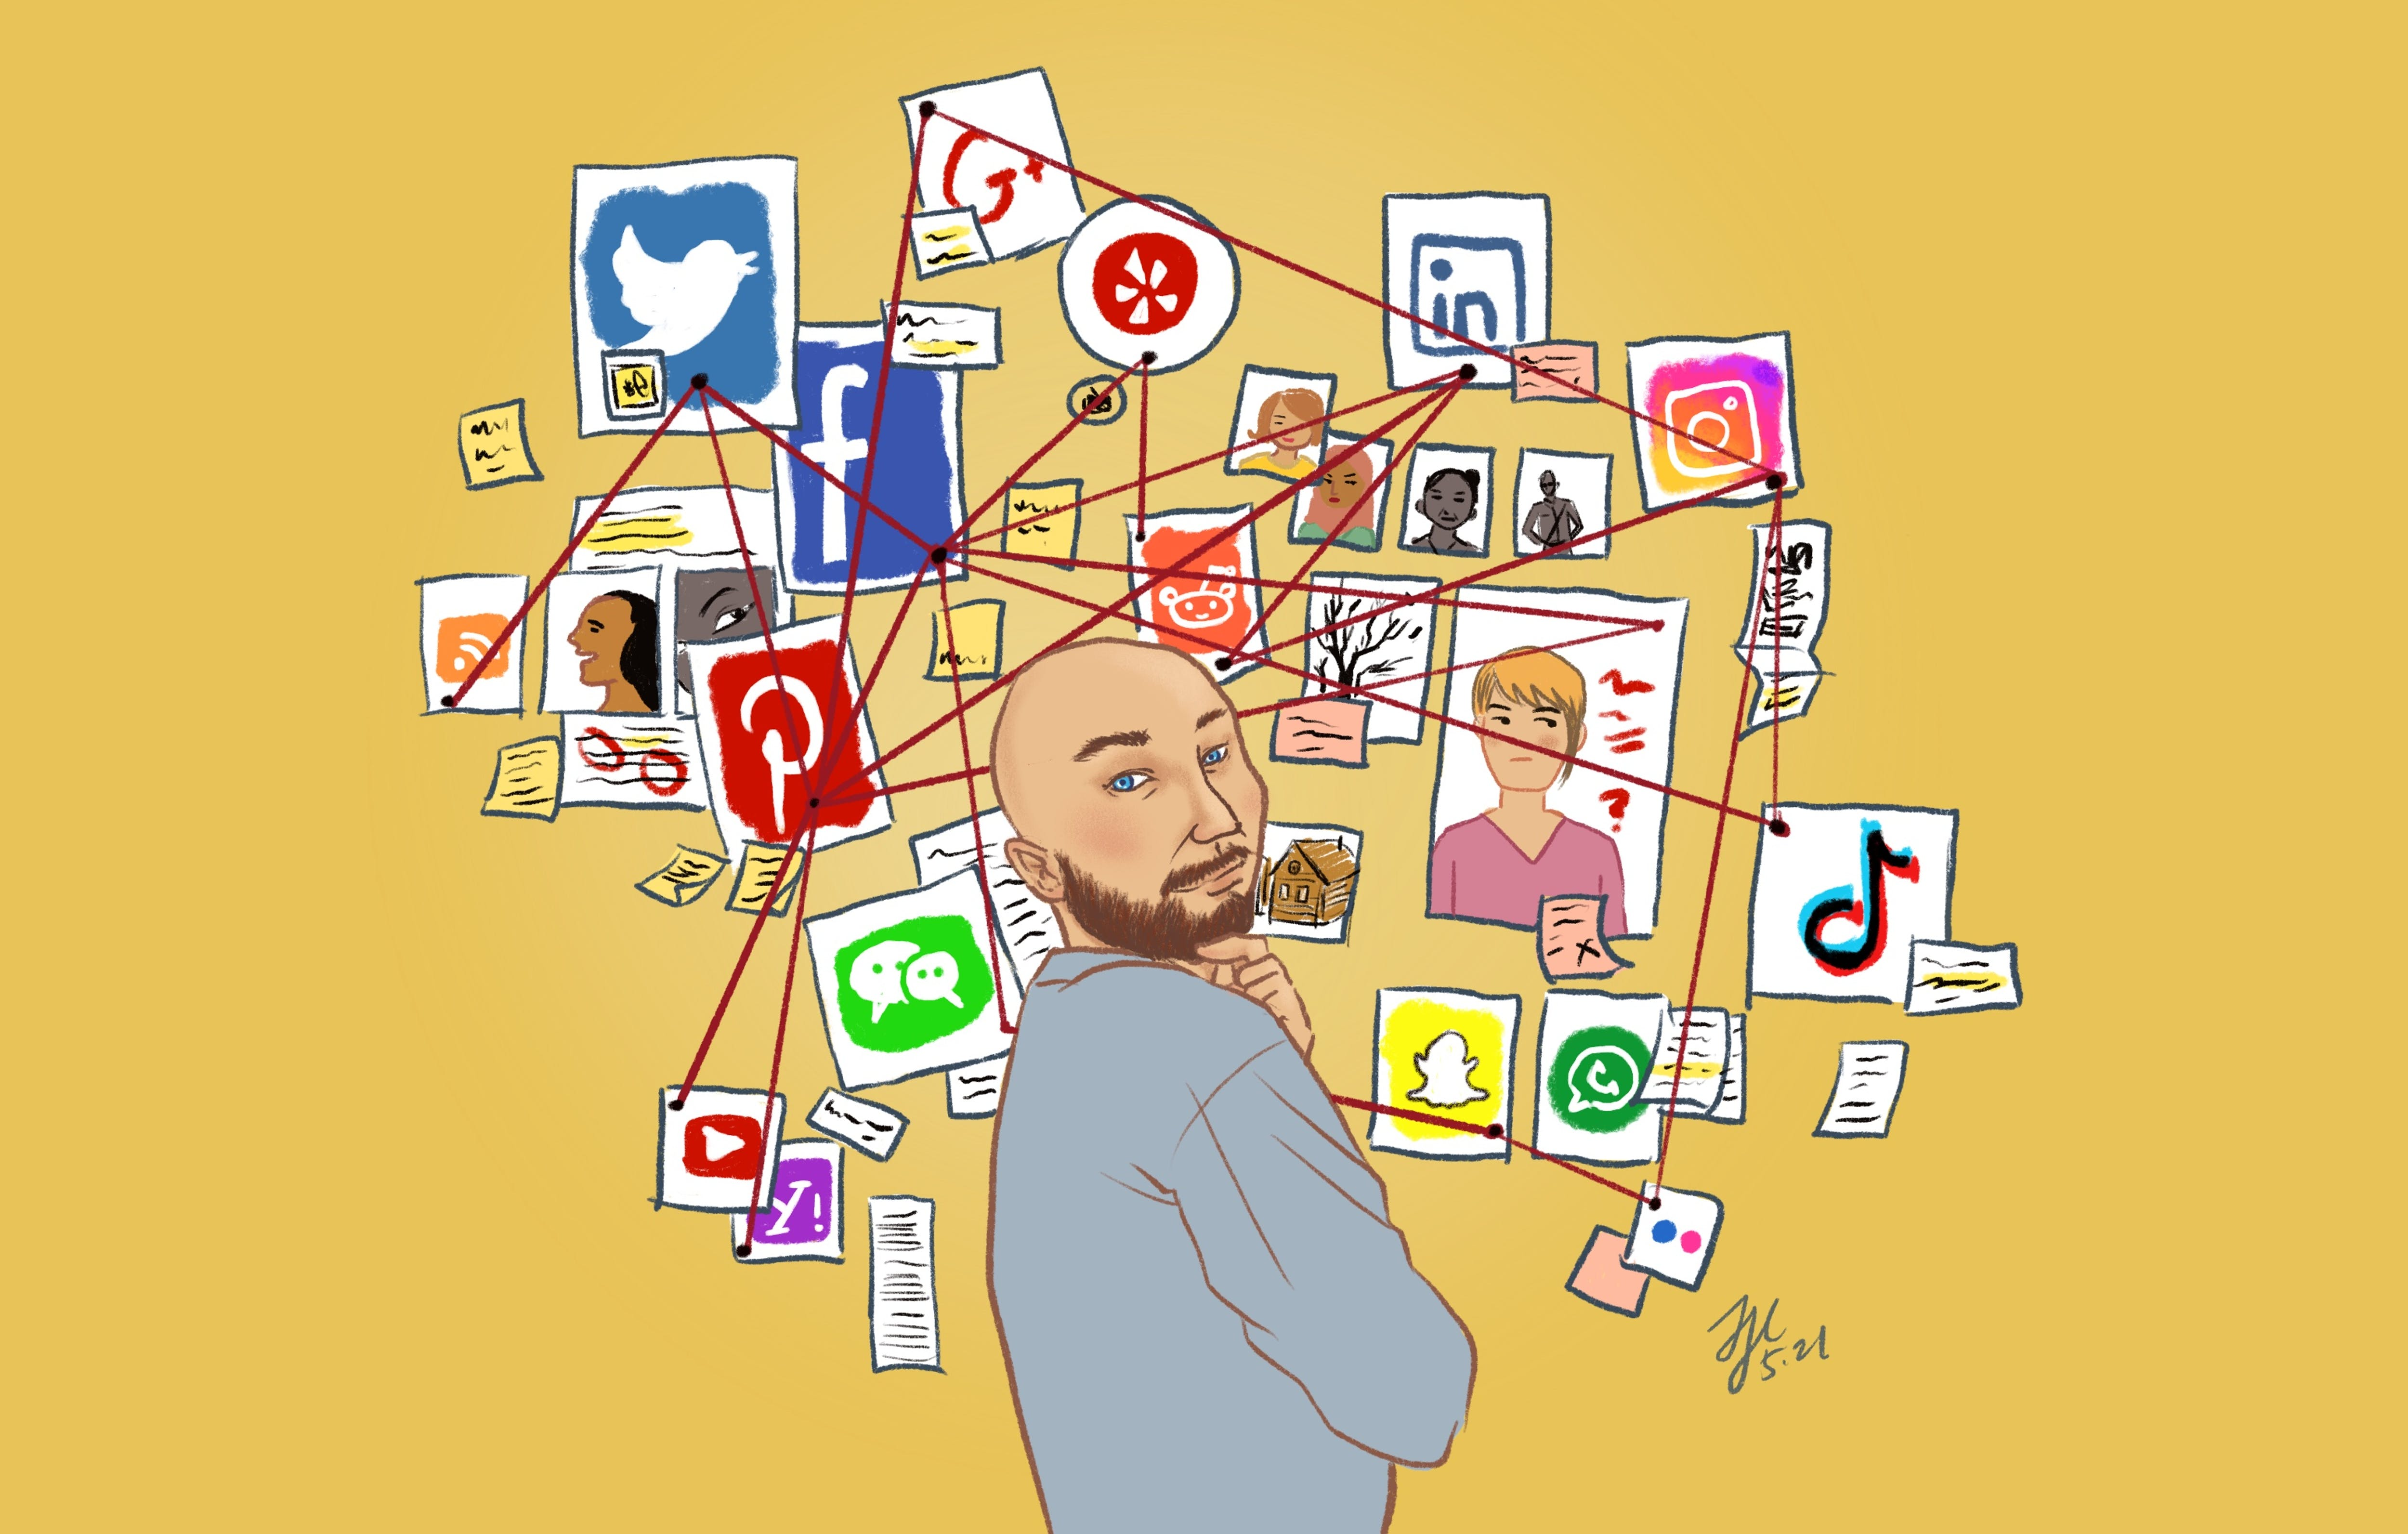 Illustration of Anthony Kelly, standing over a pinboard joining many different social media logos and other communications themes.